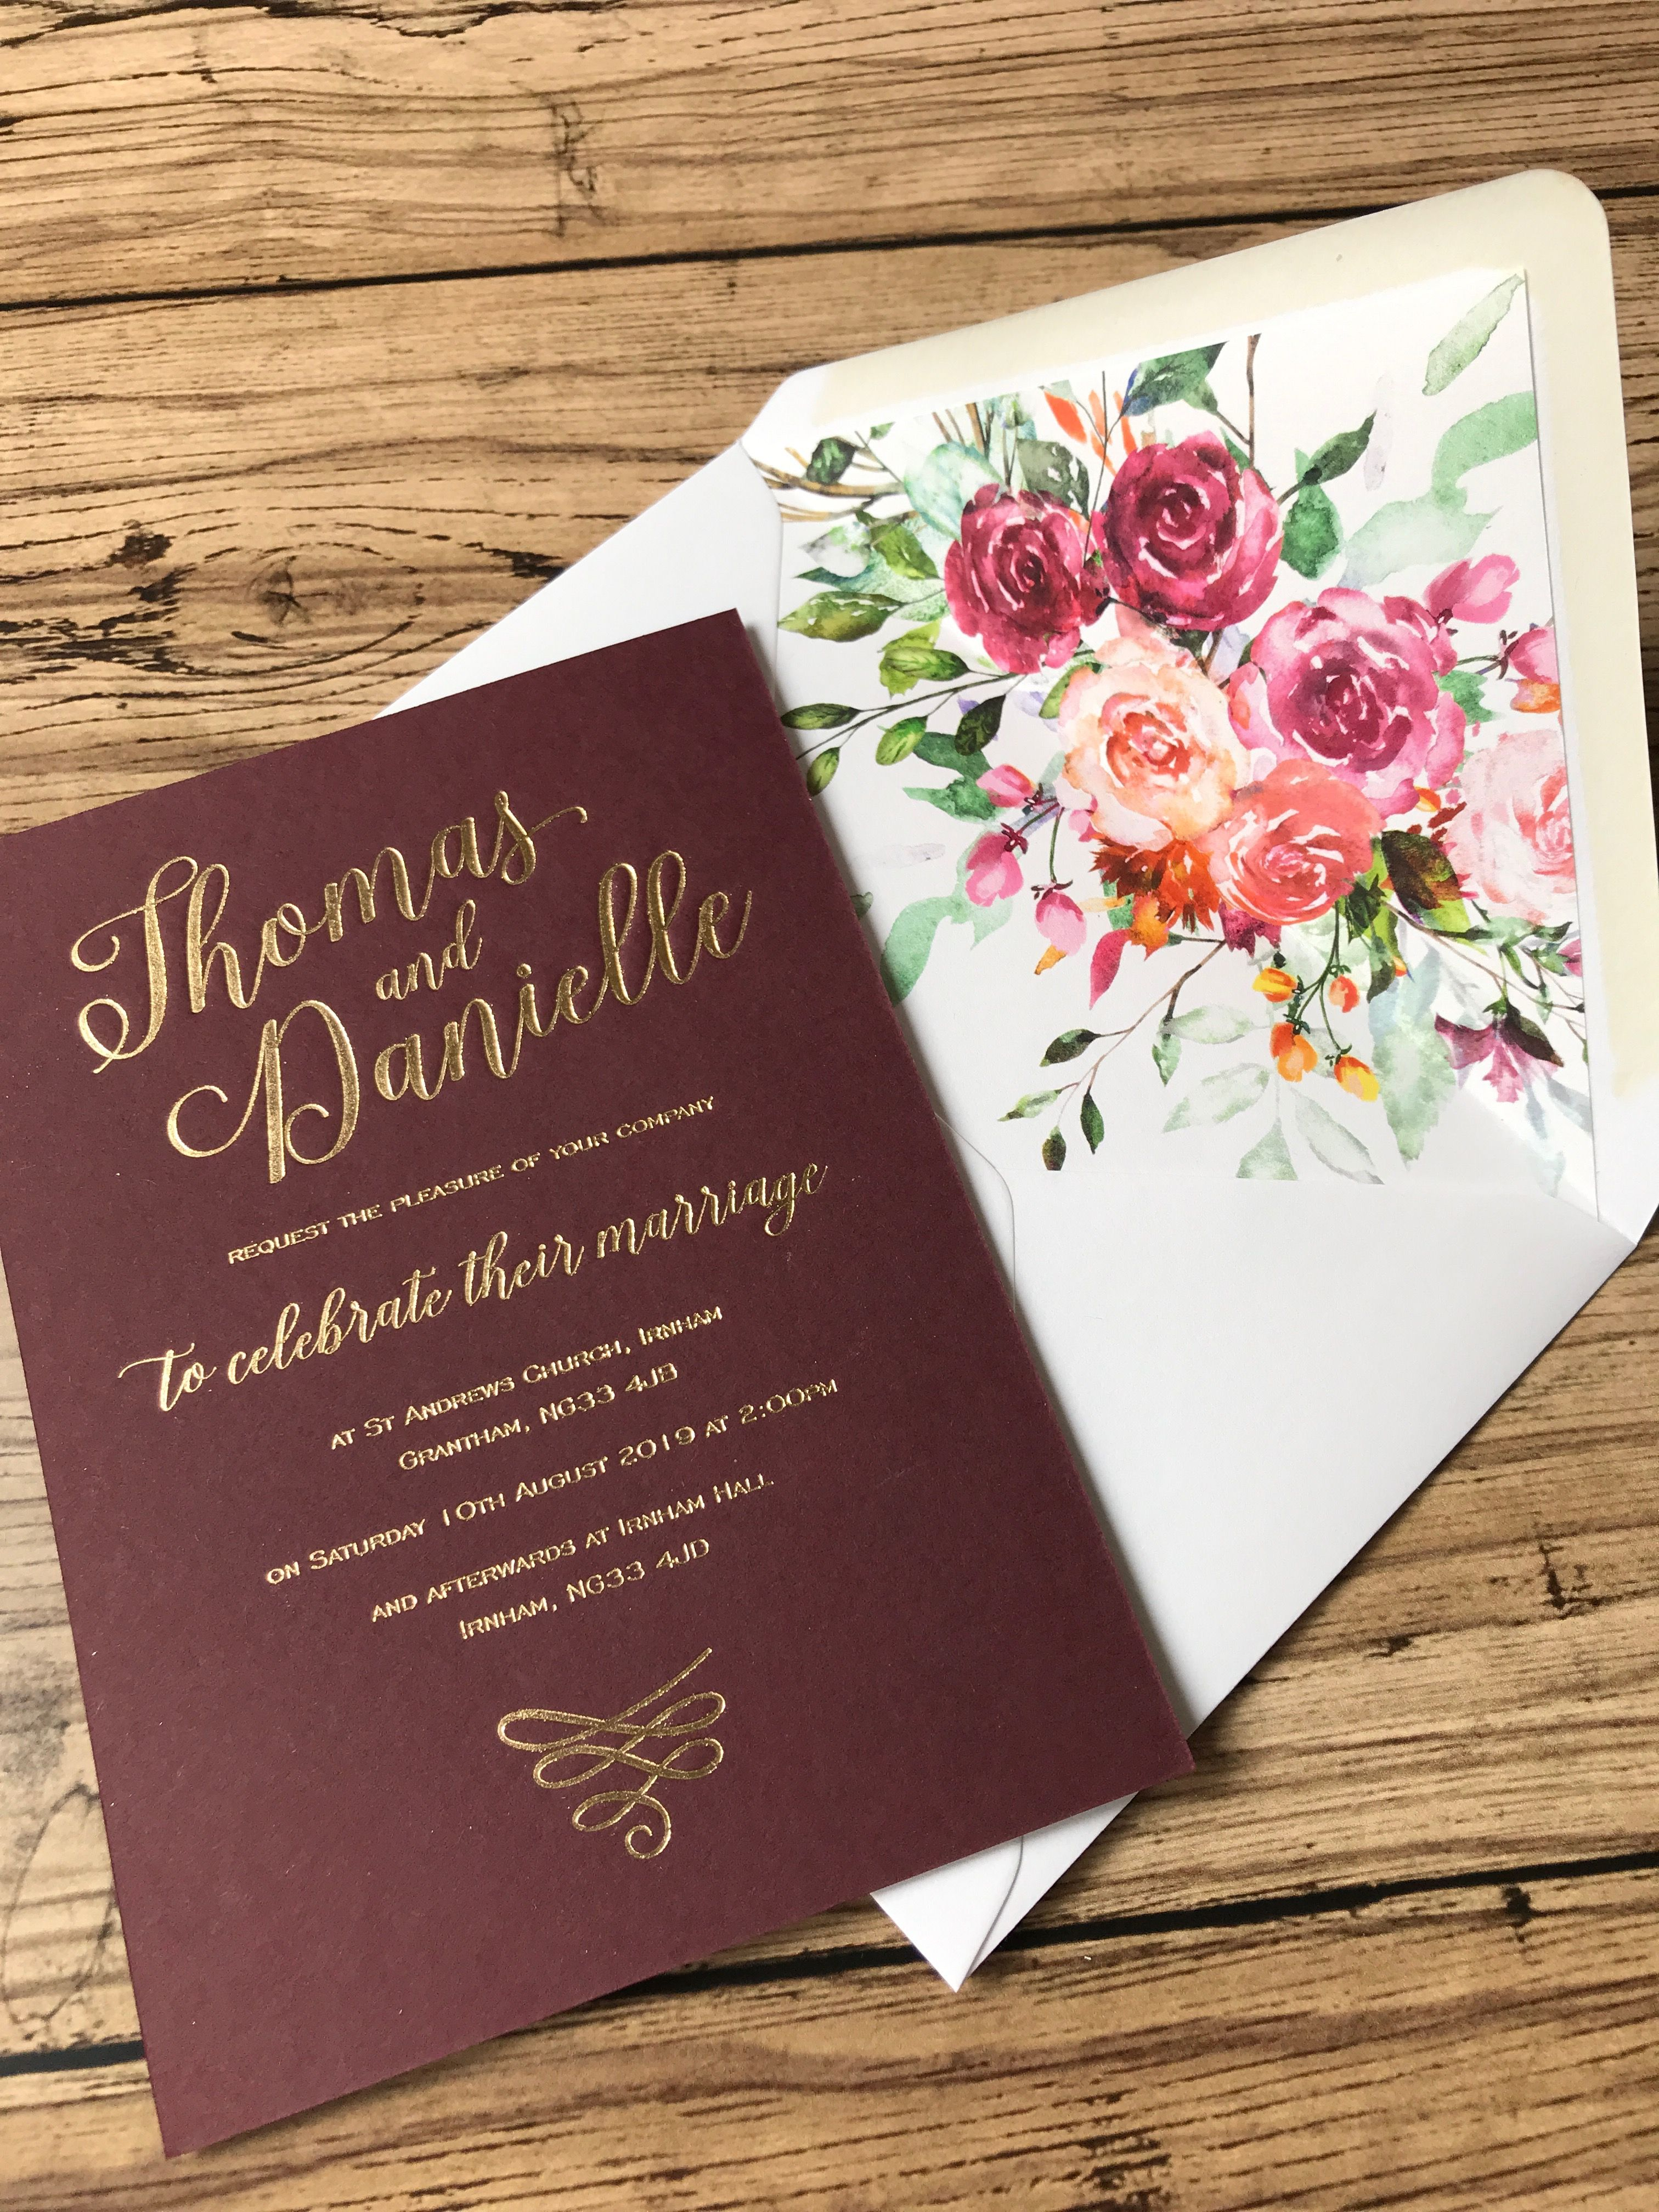 Burgundy and gold foiled wedding invitation with burgundy